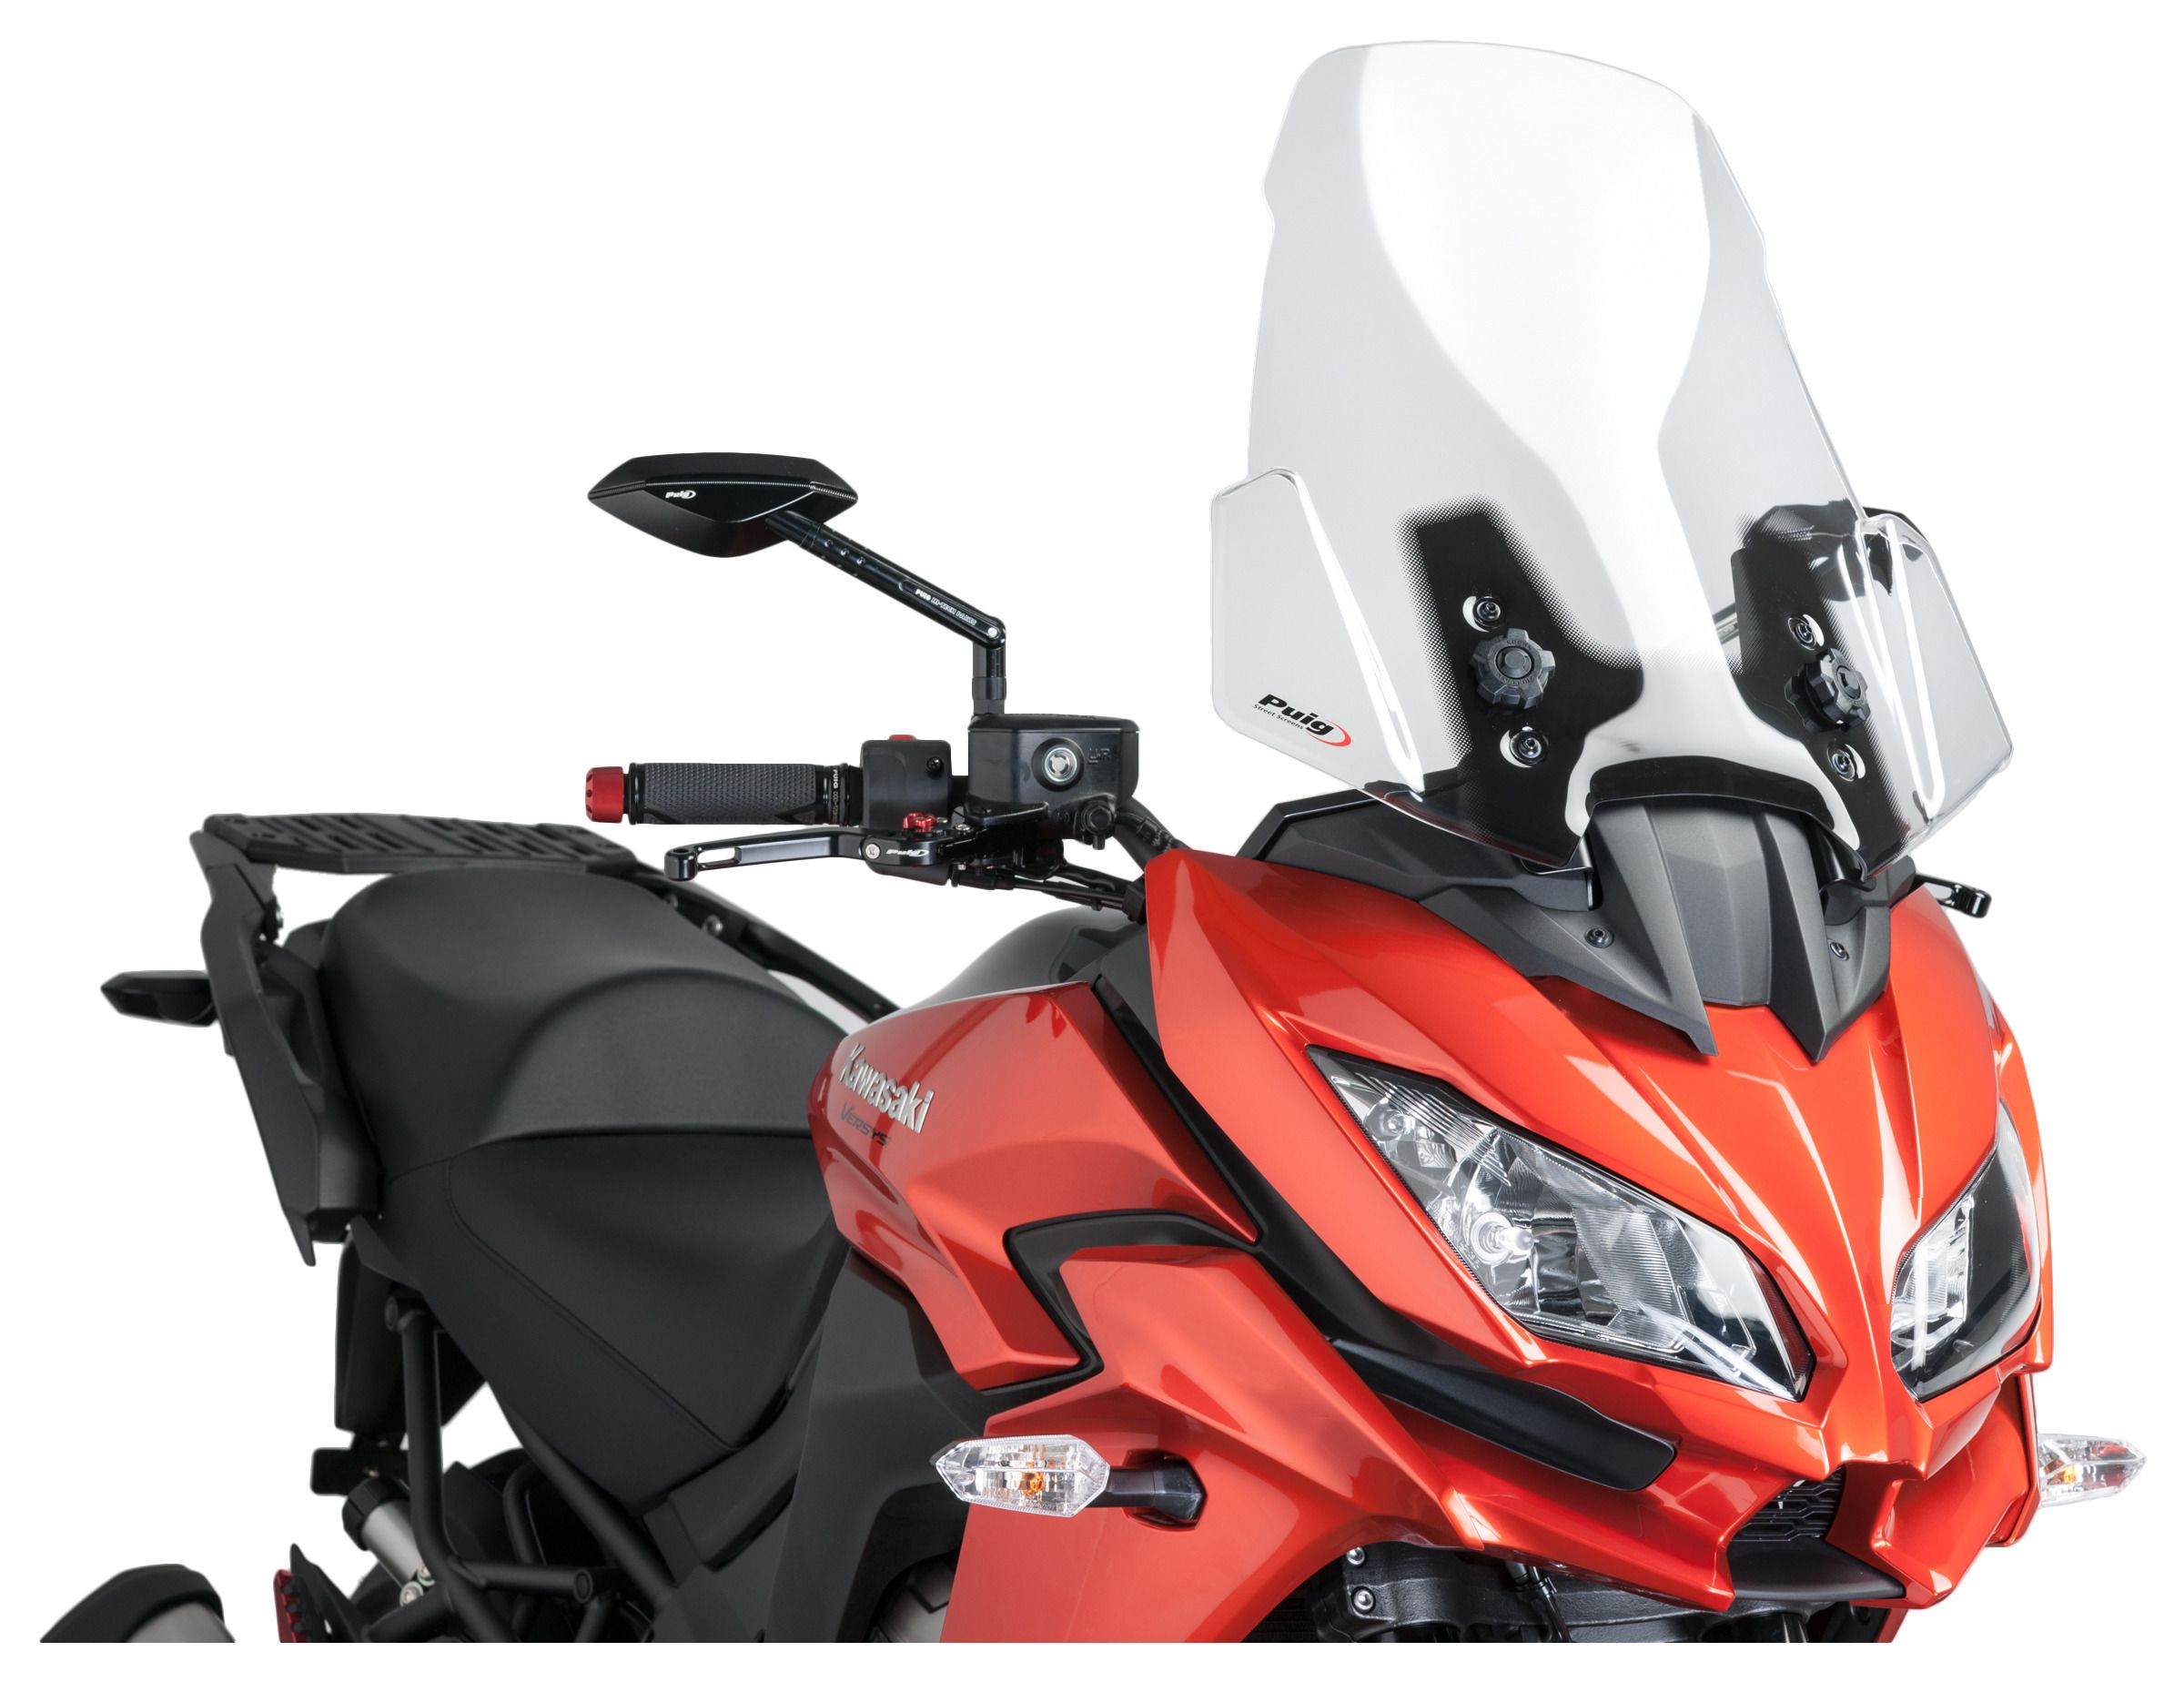 Kawasaki Versys 100lt Heated Grips Wiring Diagramversys Diagram Puig Touring Windscreen Versys100020122015 650 1000 Revzilla At